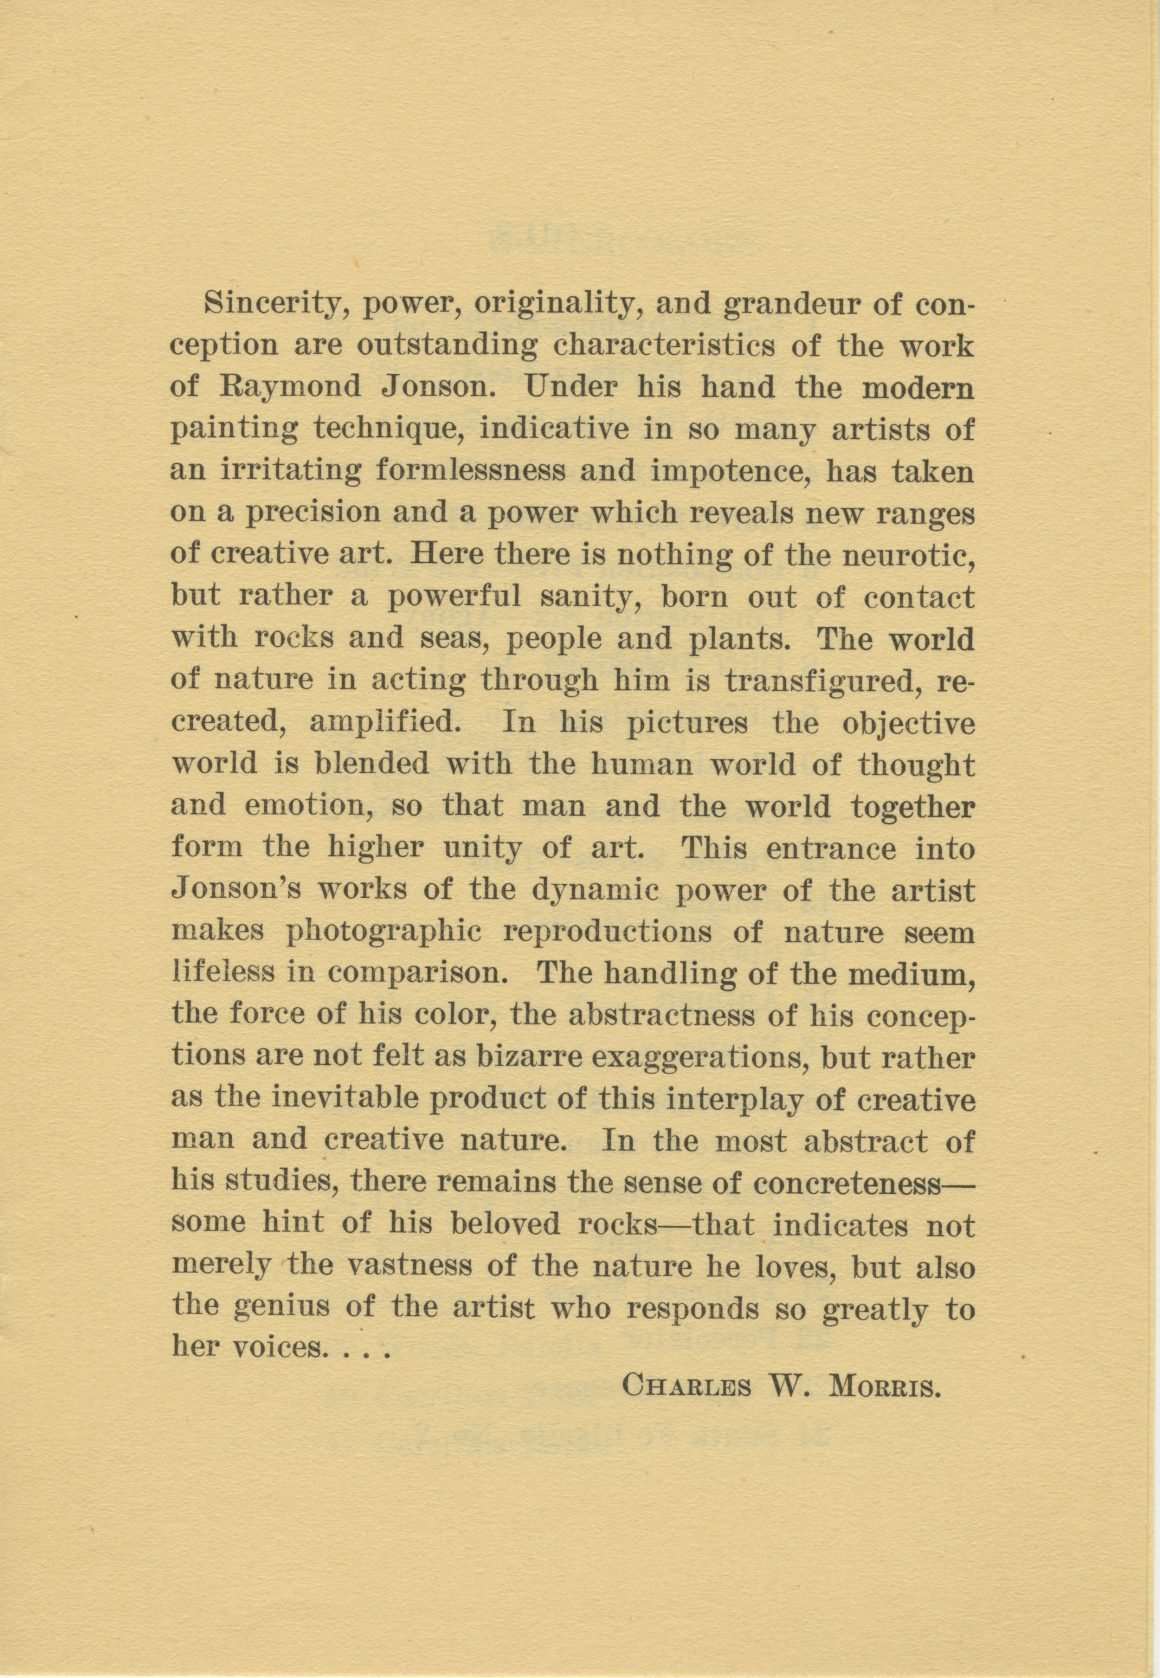 Brochure for Exhibition of Oils, Watercolors and Drawings by RaymondJonson at the Museum of Fine Arts of Houston, February 5th to 27th, 1928.